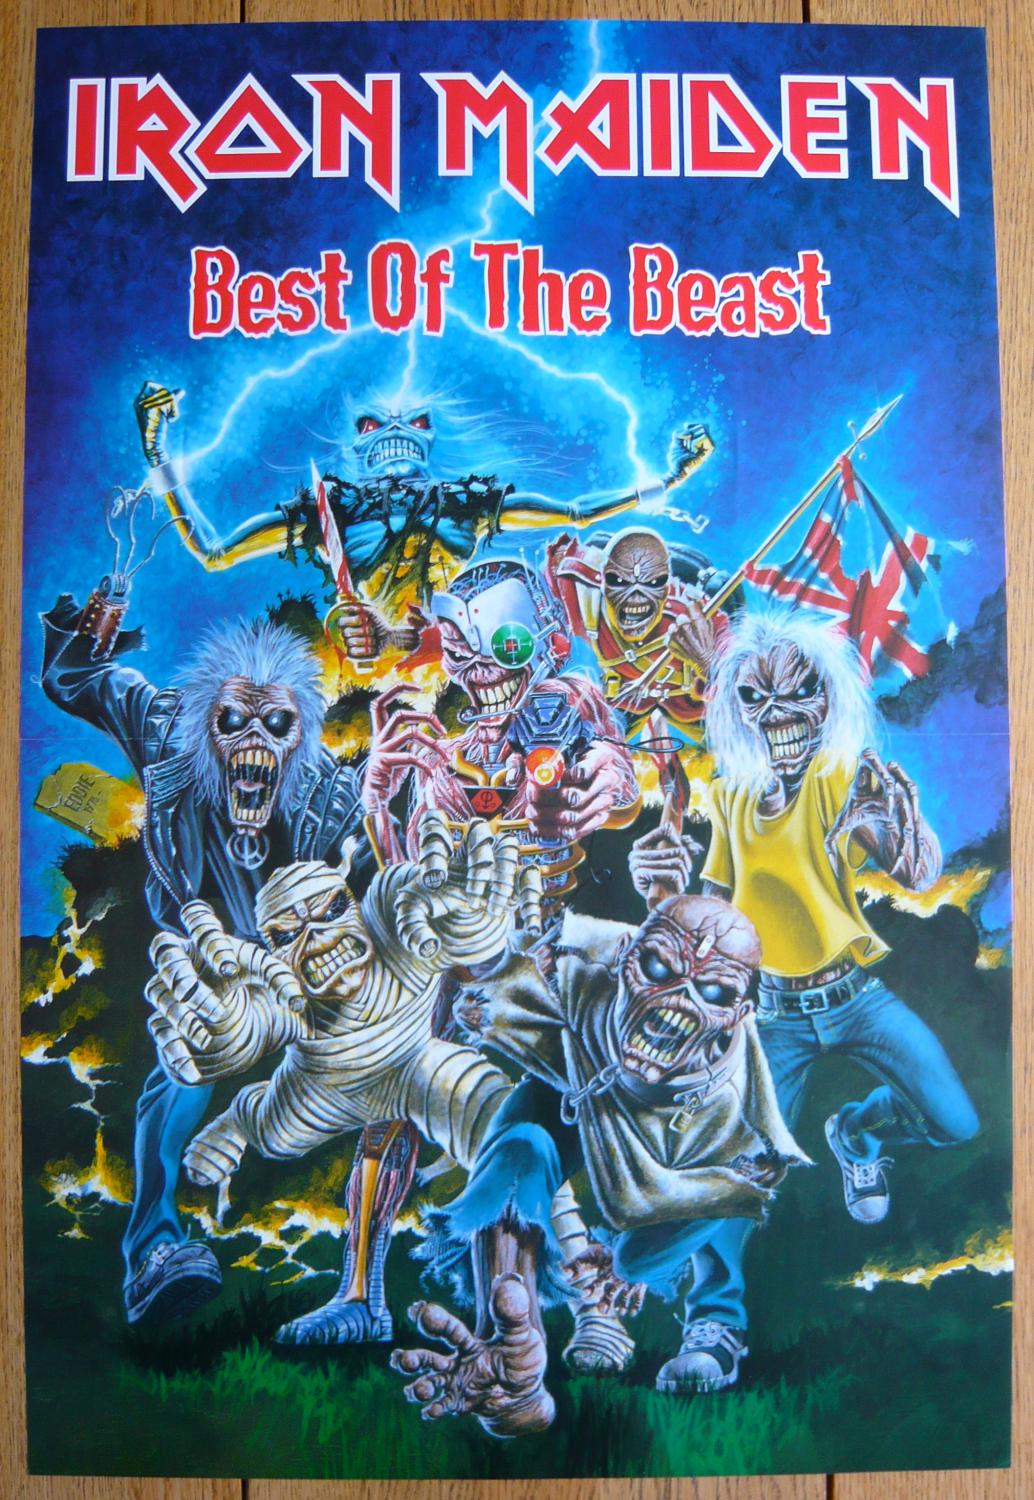 Iron Maiden Best Of The Beast Rare Original Record Company Promotional Music Poster By Iron Maiden Fine 1996 Lott Rare Books